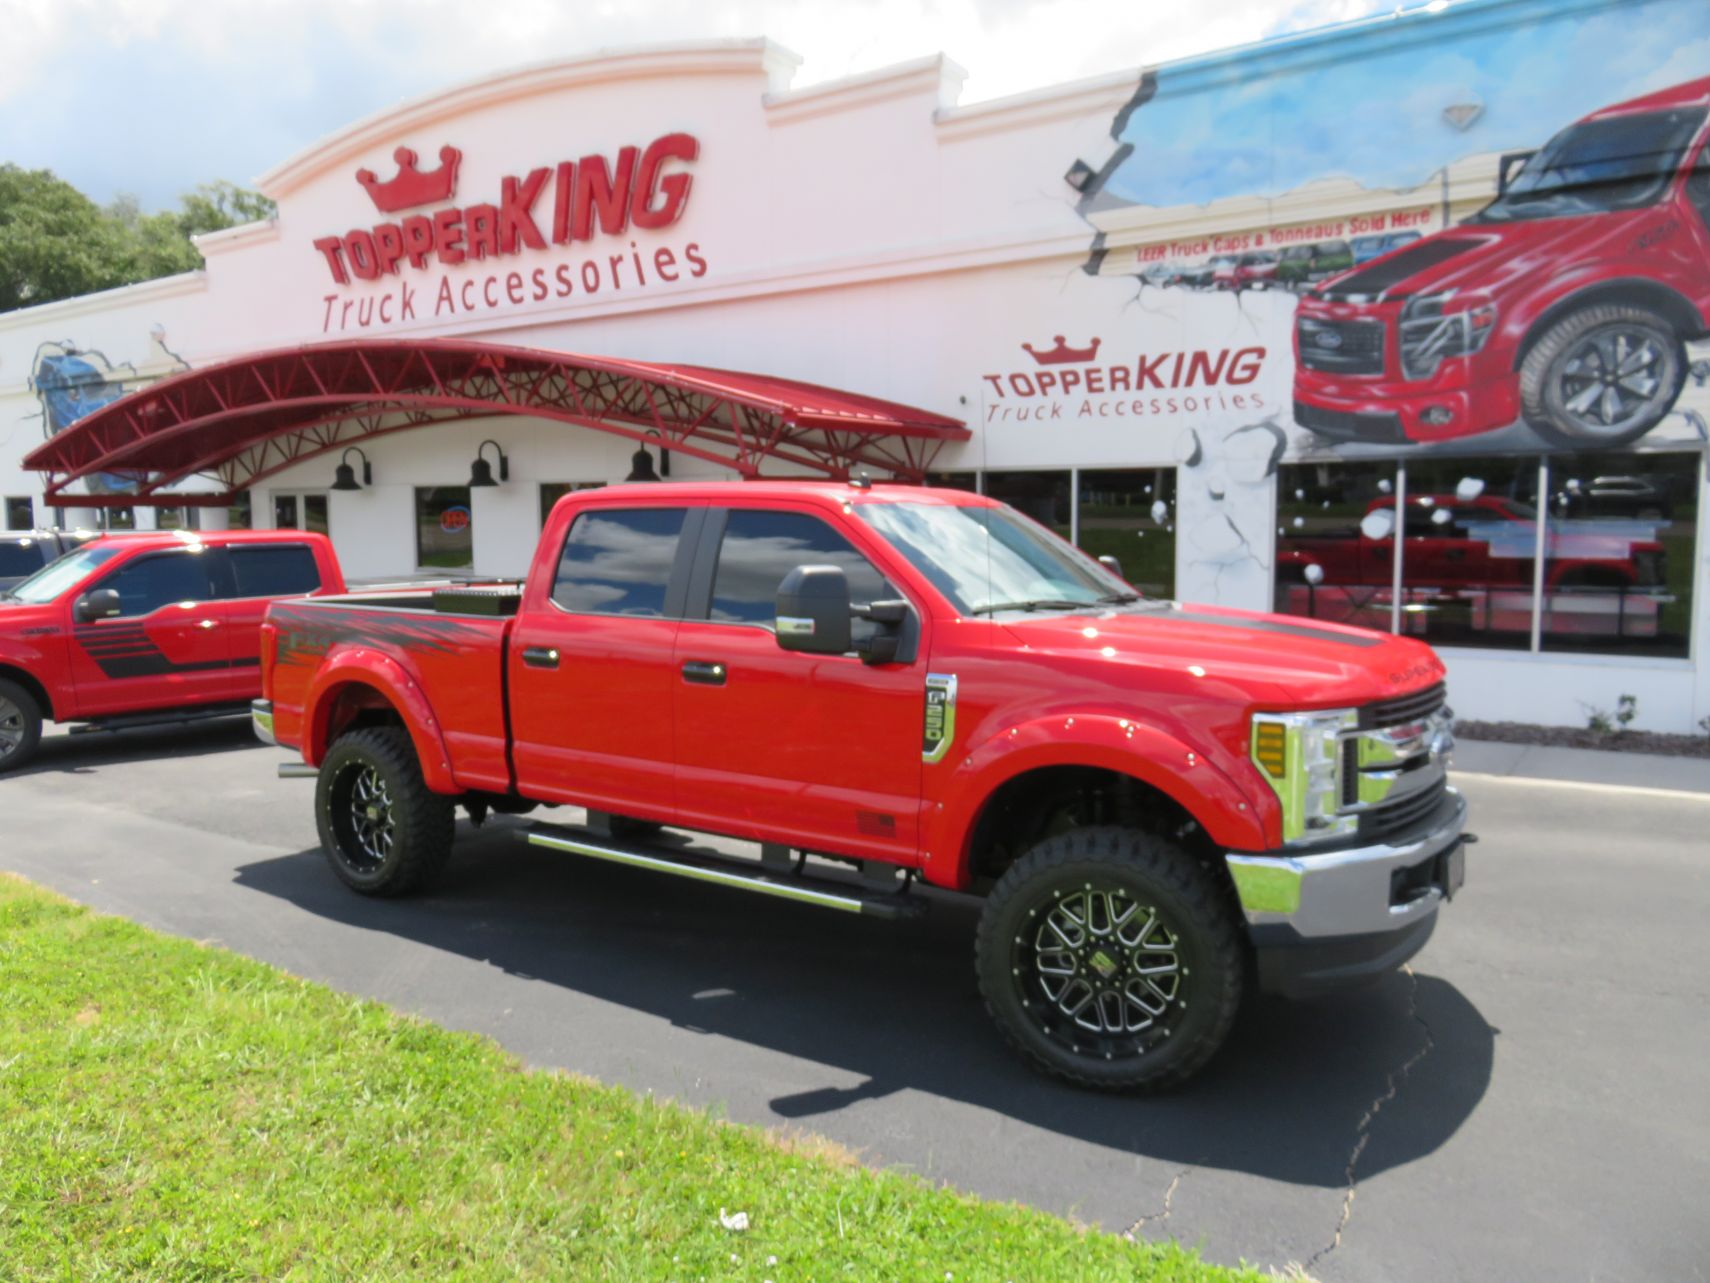 2019 Ford F250 with Fender Flares, Tool Box, Hitch, Nerf Bars, and Graphics by by TopperKING in Brandon, FL 813-689-2449 or Clearwater, FL 727-530-9066!